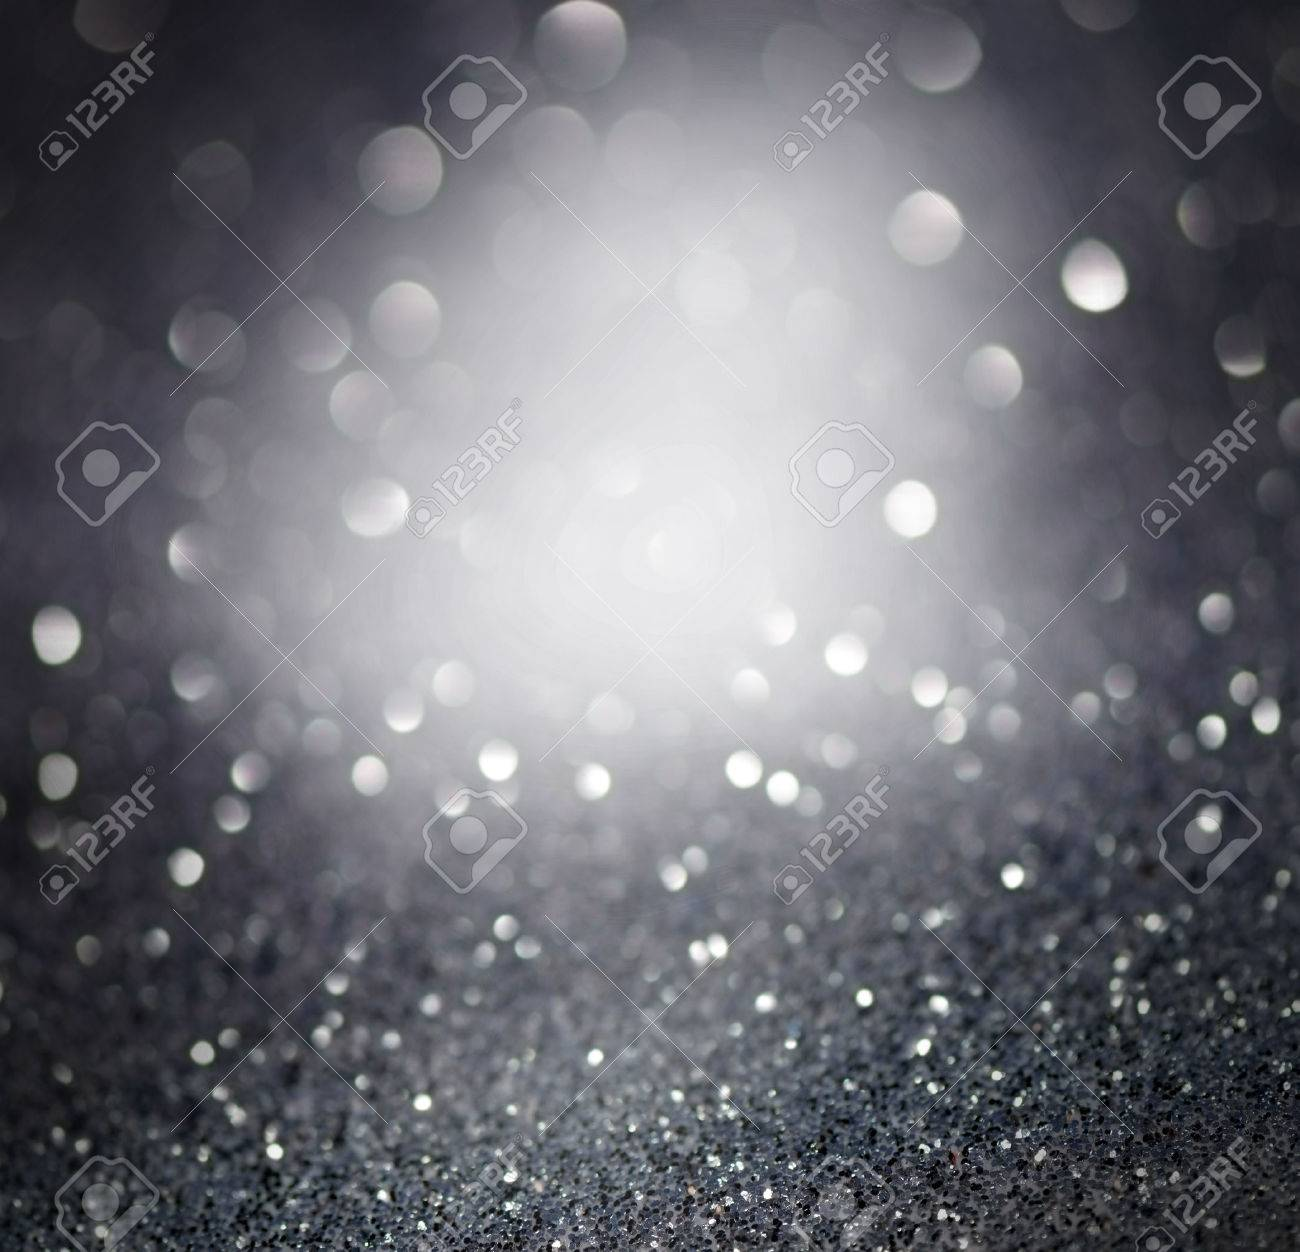 silver glittering christmas lights blurred abstract background stock photo 48804255 - Silver Christmas Lights